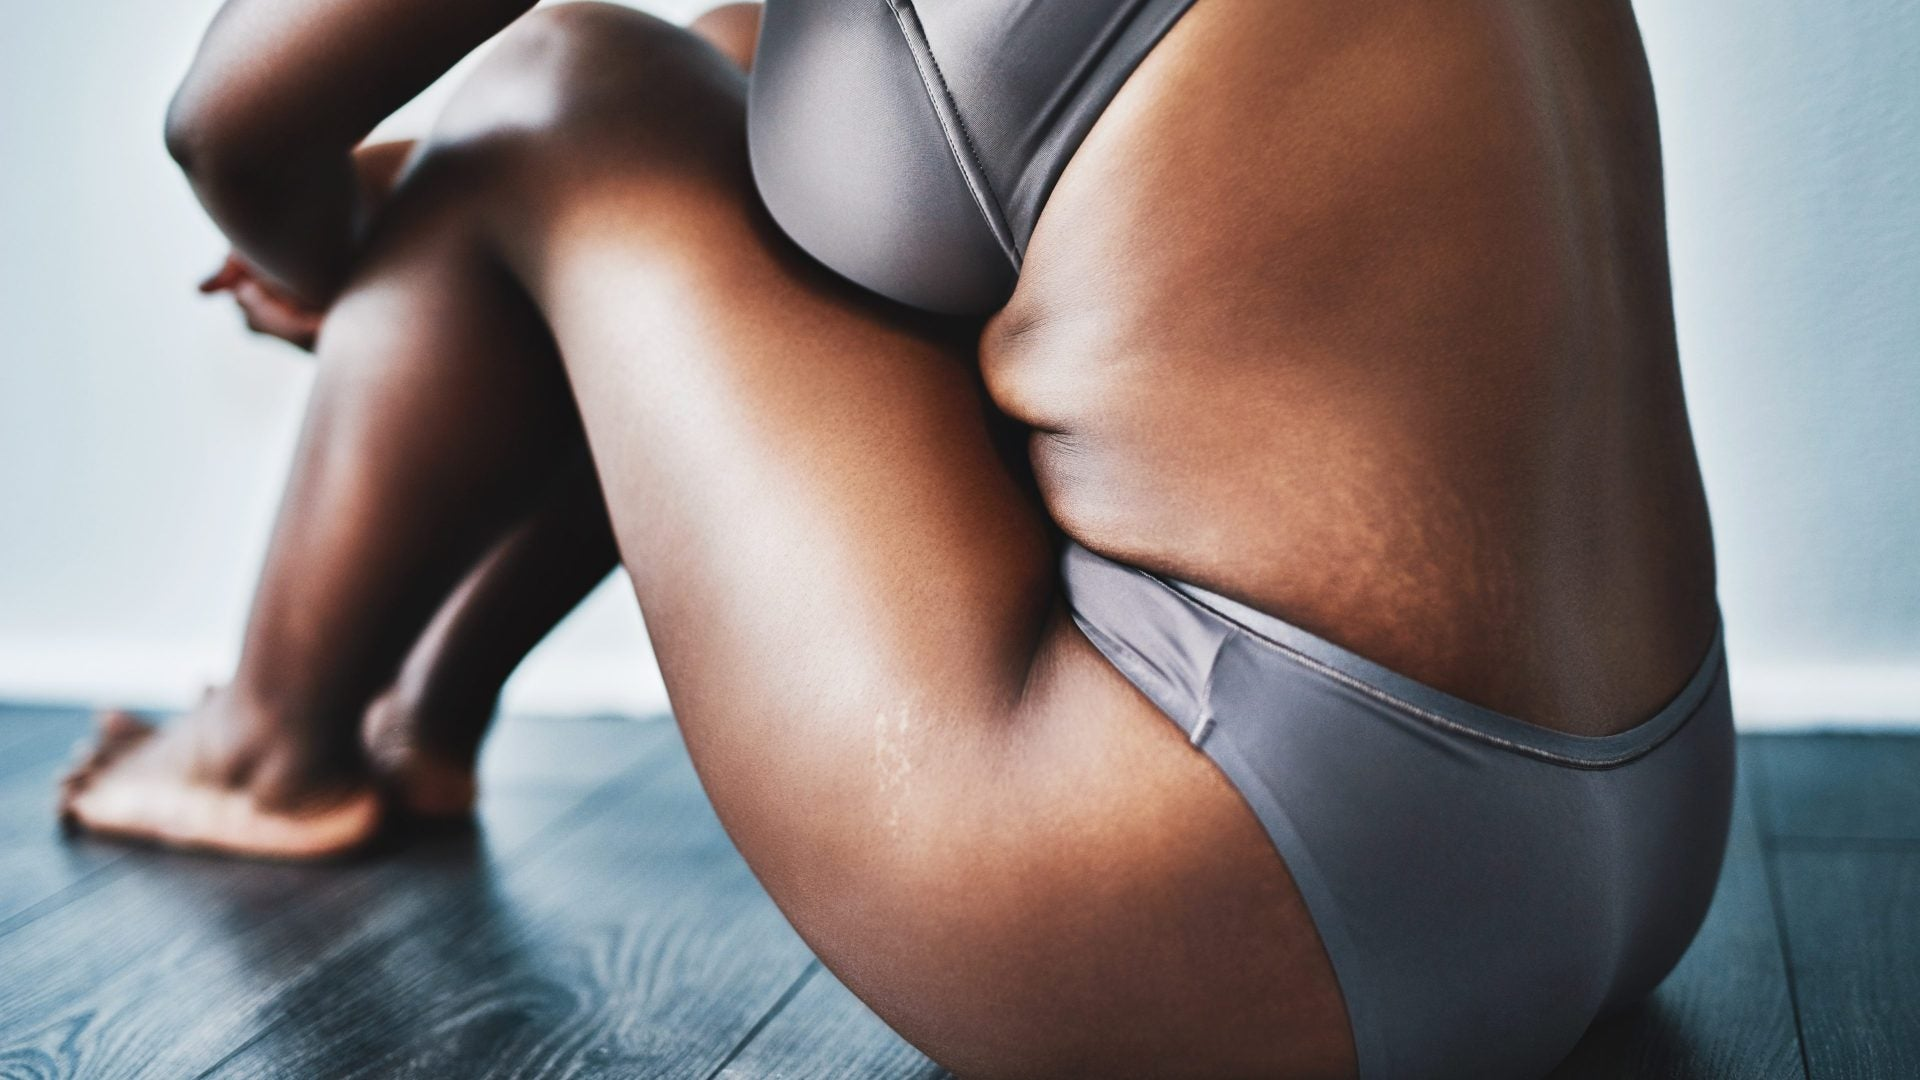 Ask An OB-GYN: Is There A Safe Way To Delay My Menstrual Cycle?